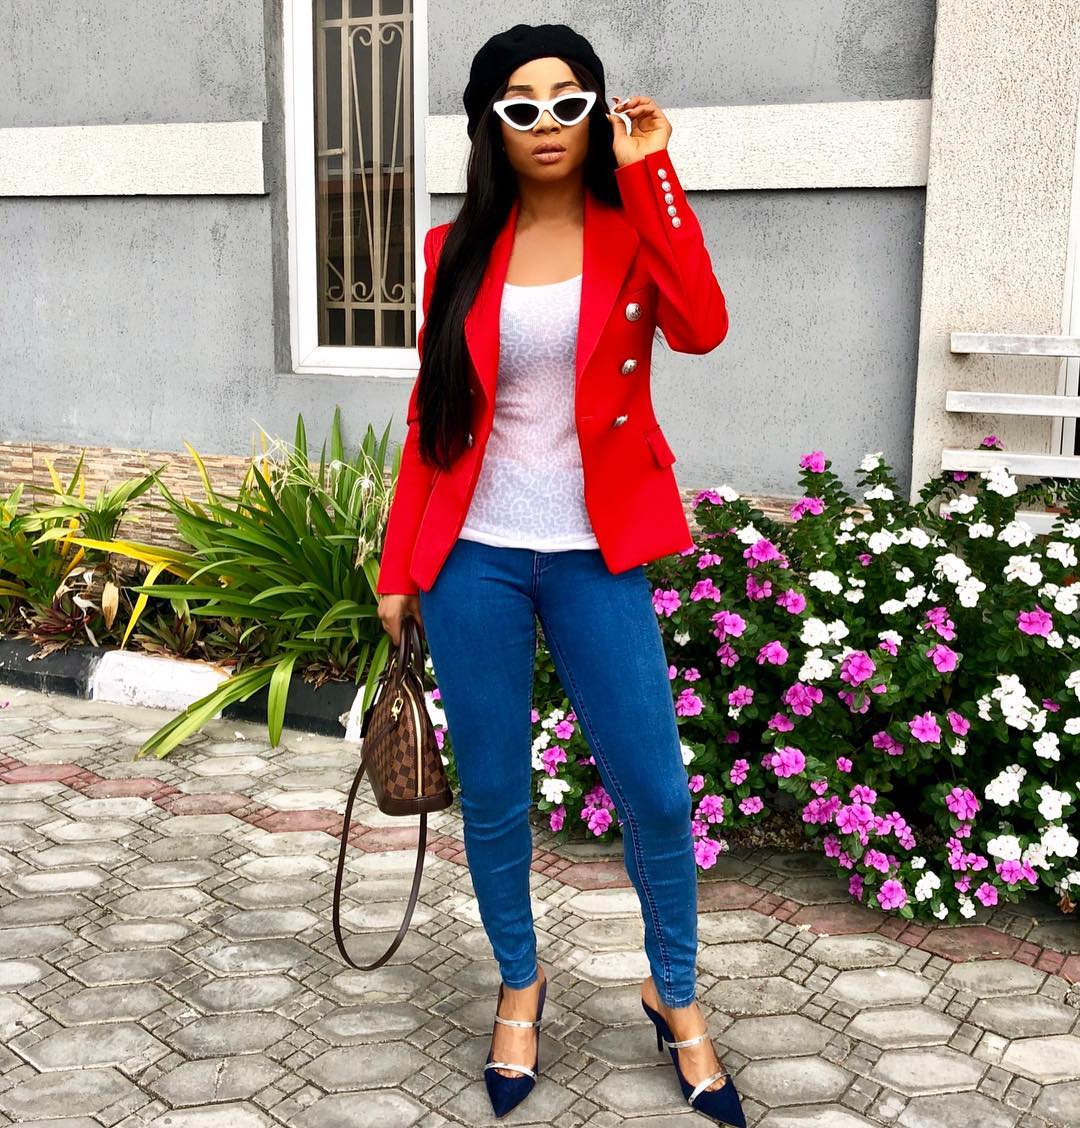 toke-makinwa-and-other-celebs-are-all-rocking-this-trending-cat-eye-sunglasses